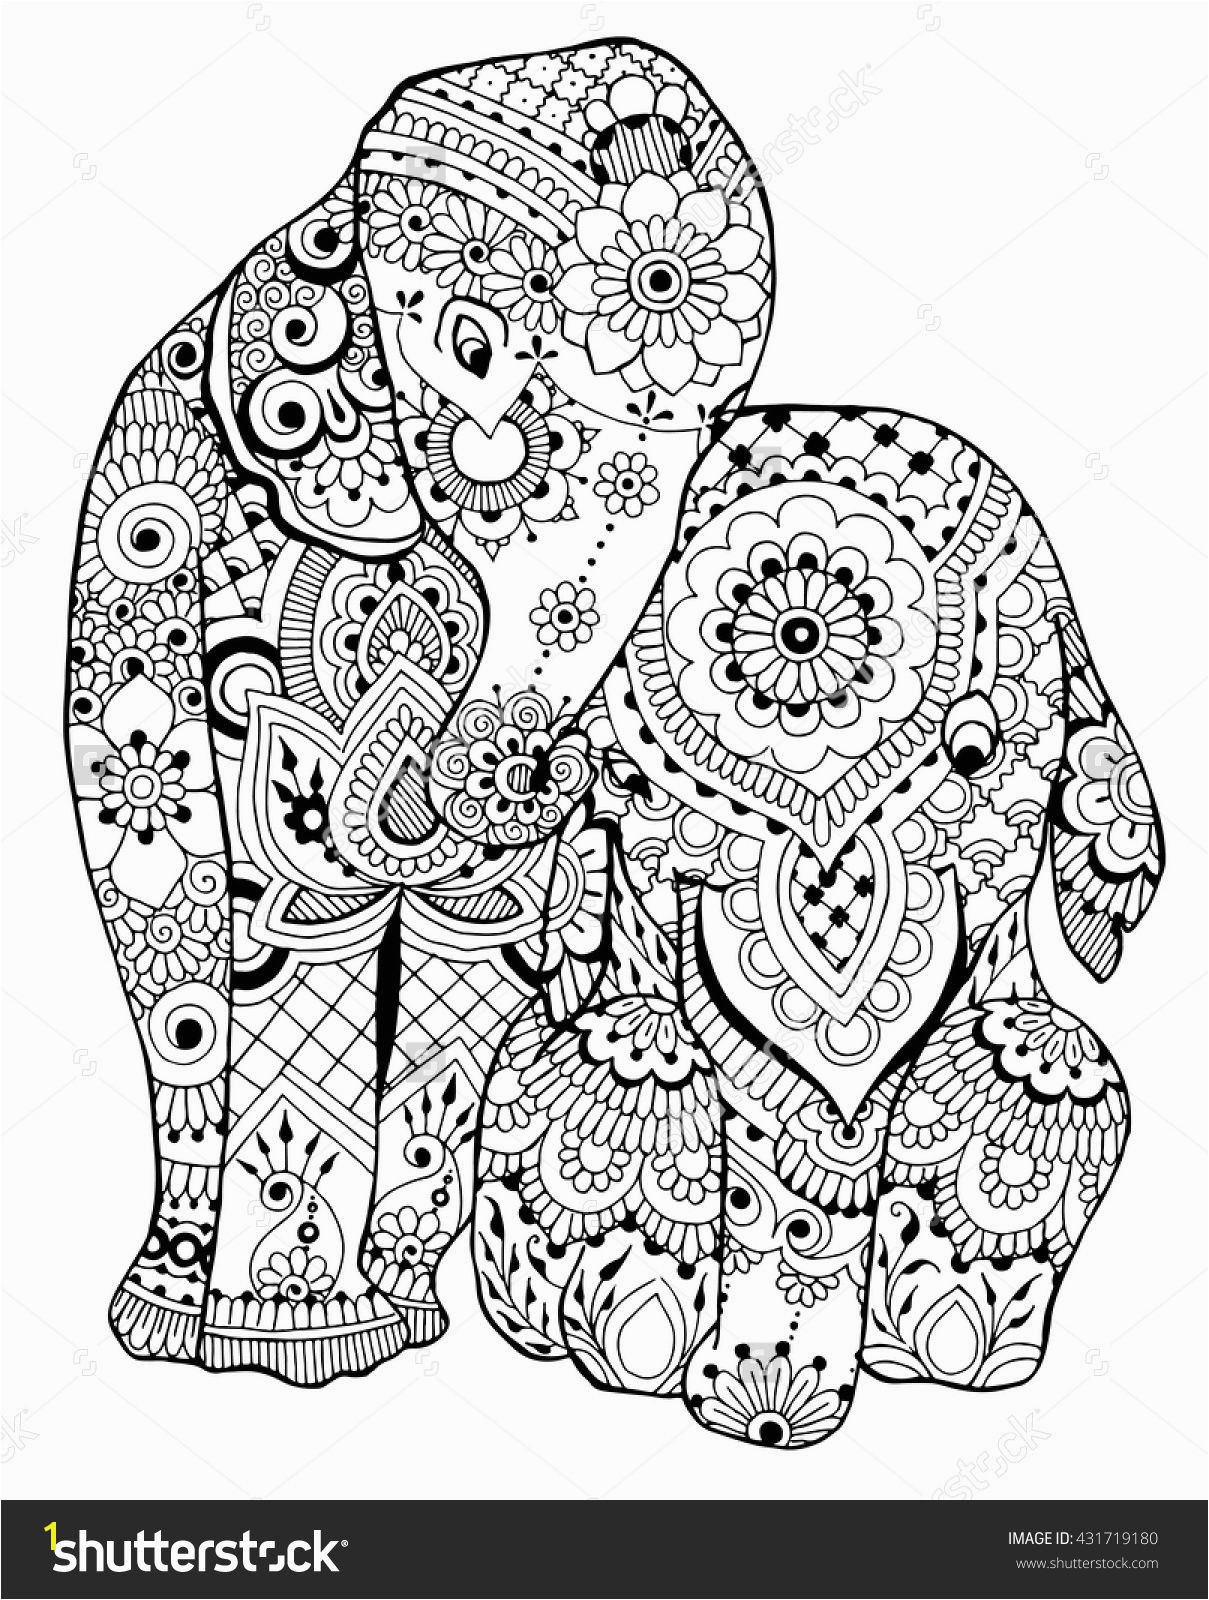 Elephant Coloring Pages Best Color Page New Children Colouring 0d Archives Con Scio – Modokom